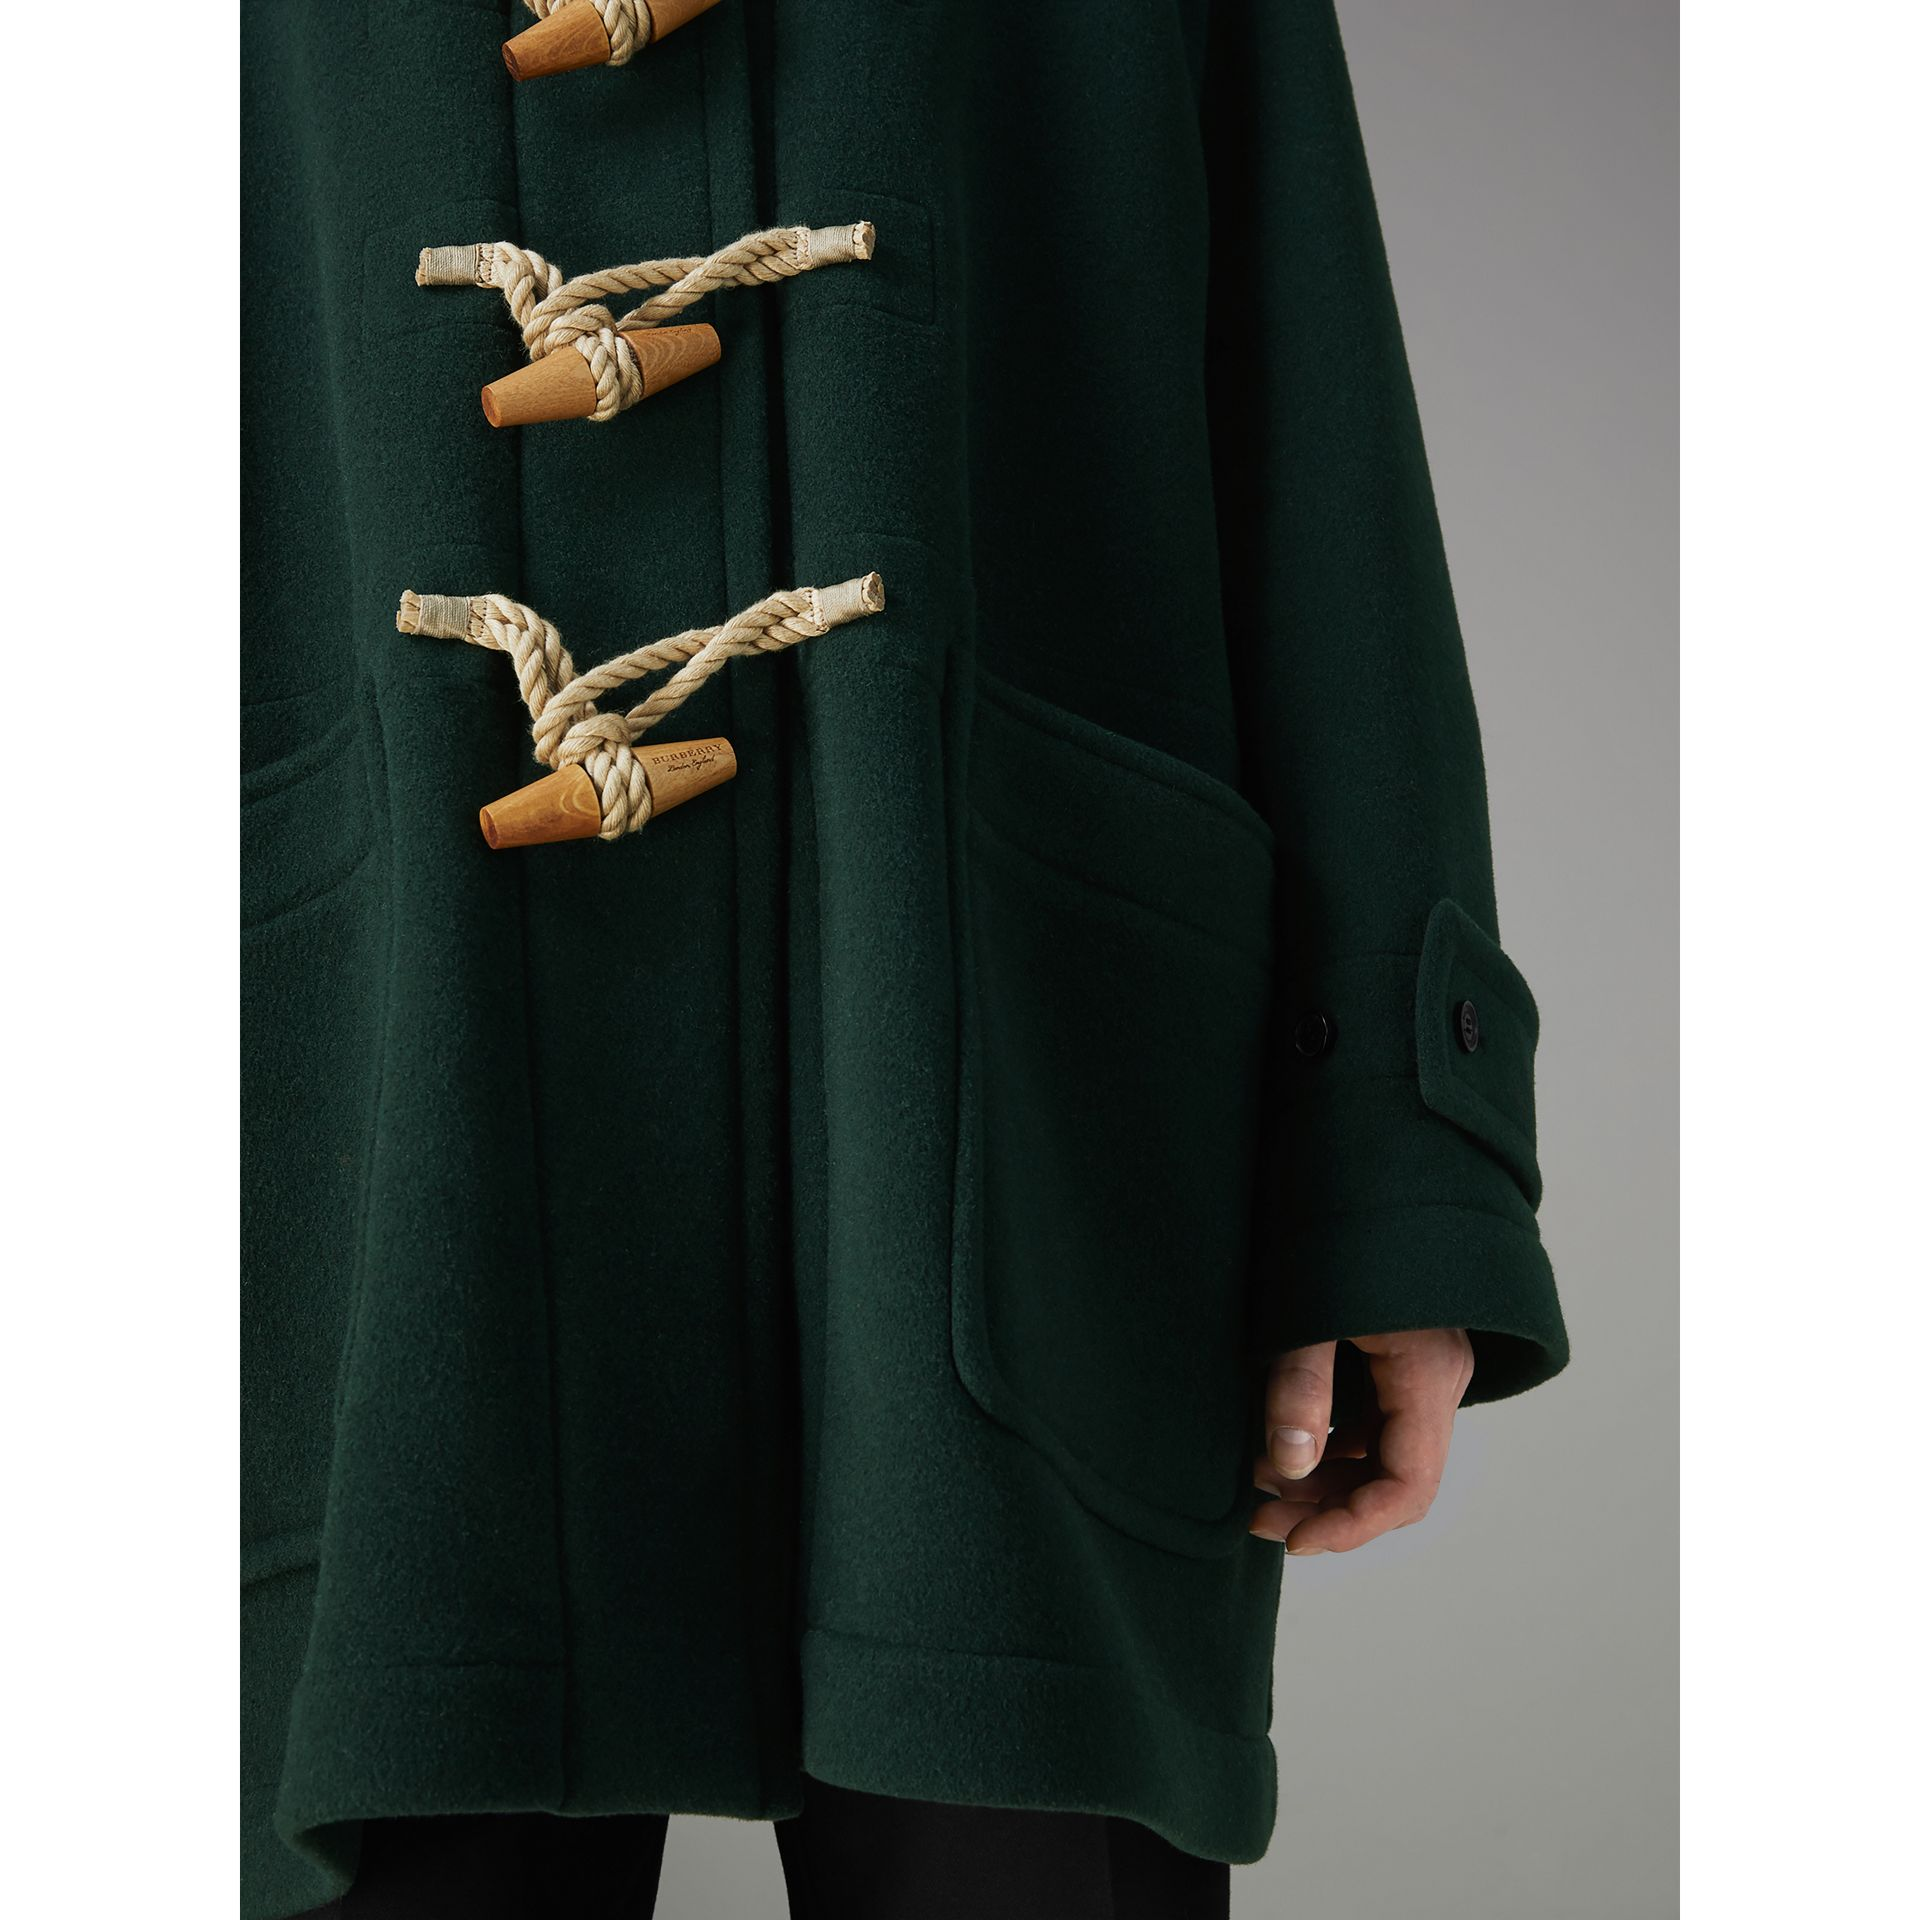 Gosha x Burberry Oversized Duffle Coat in Dark Forest Green | Burberry Australia - gallery image 5